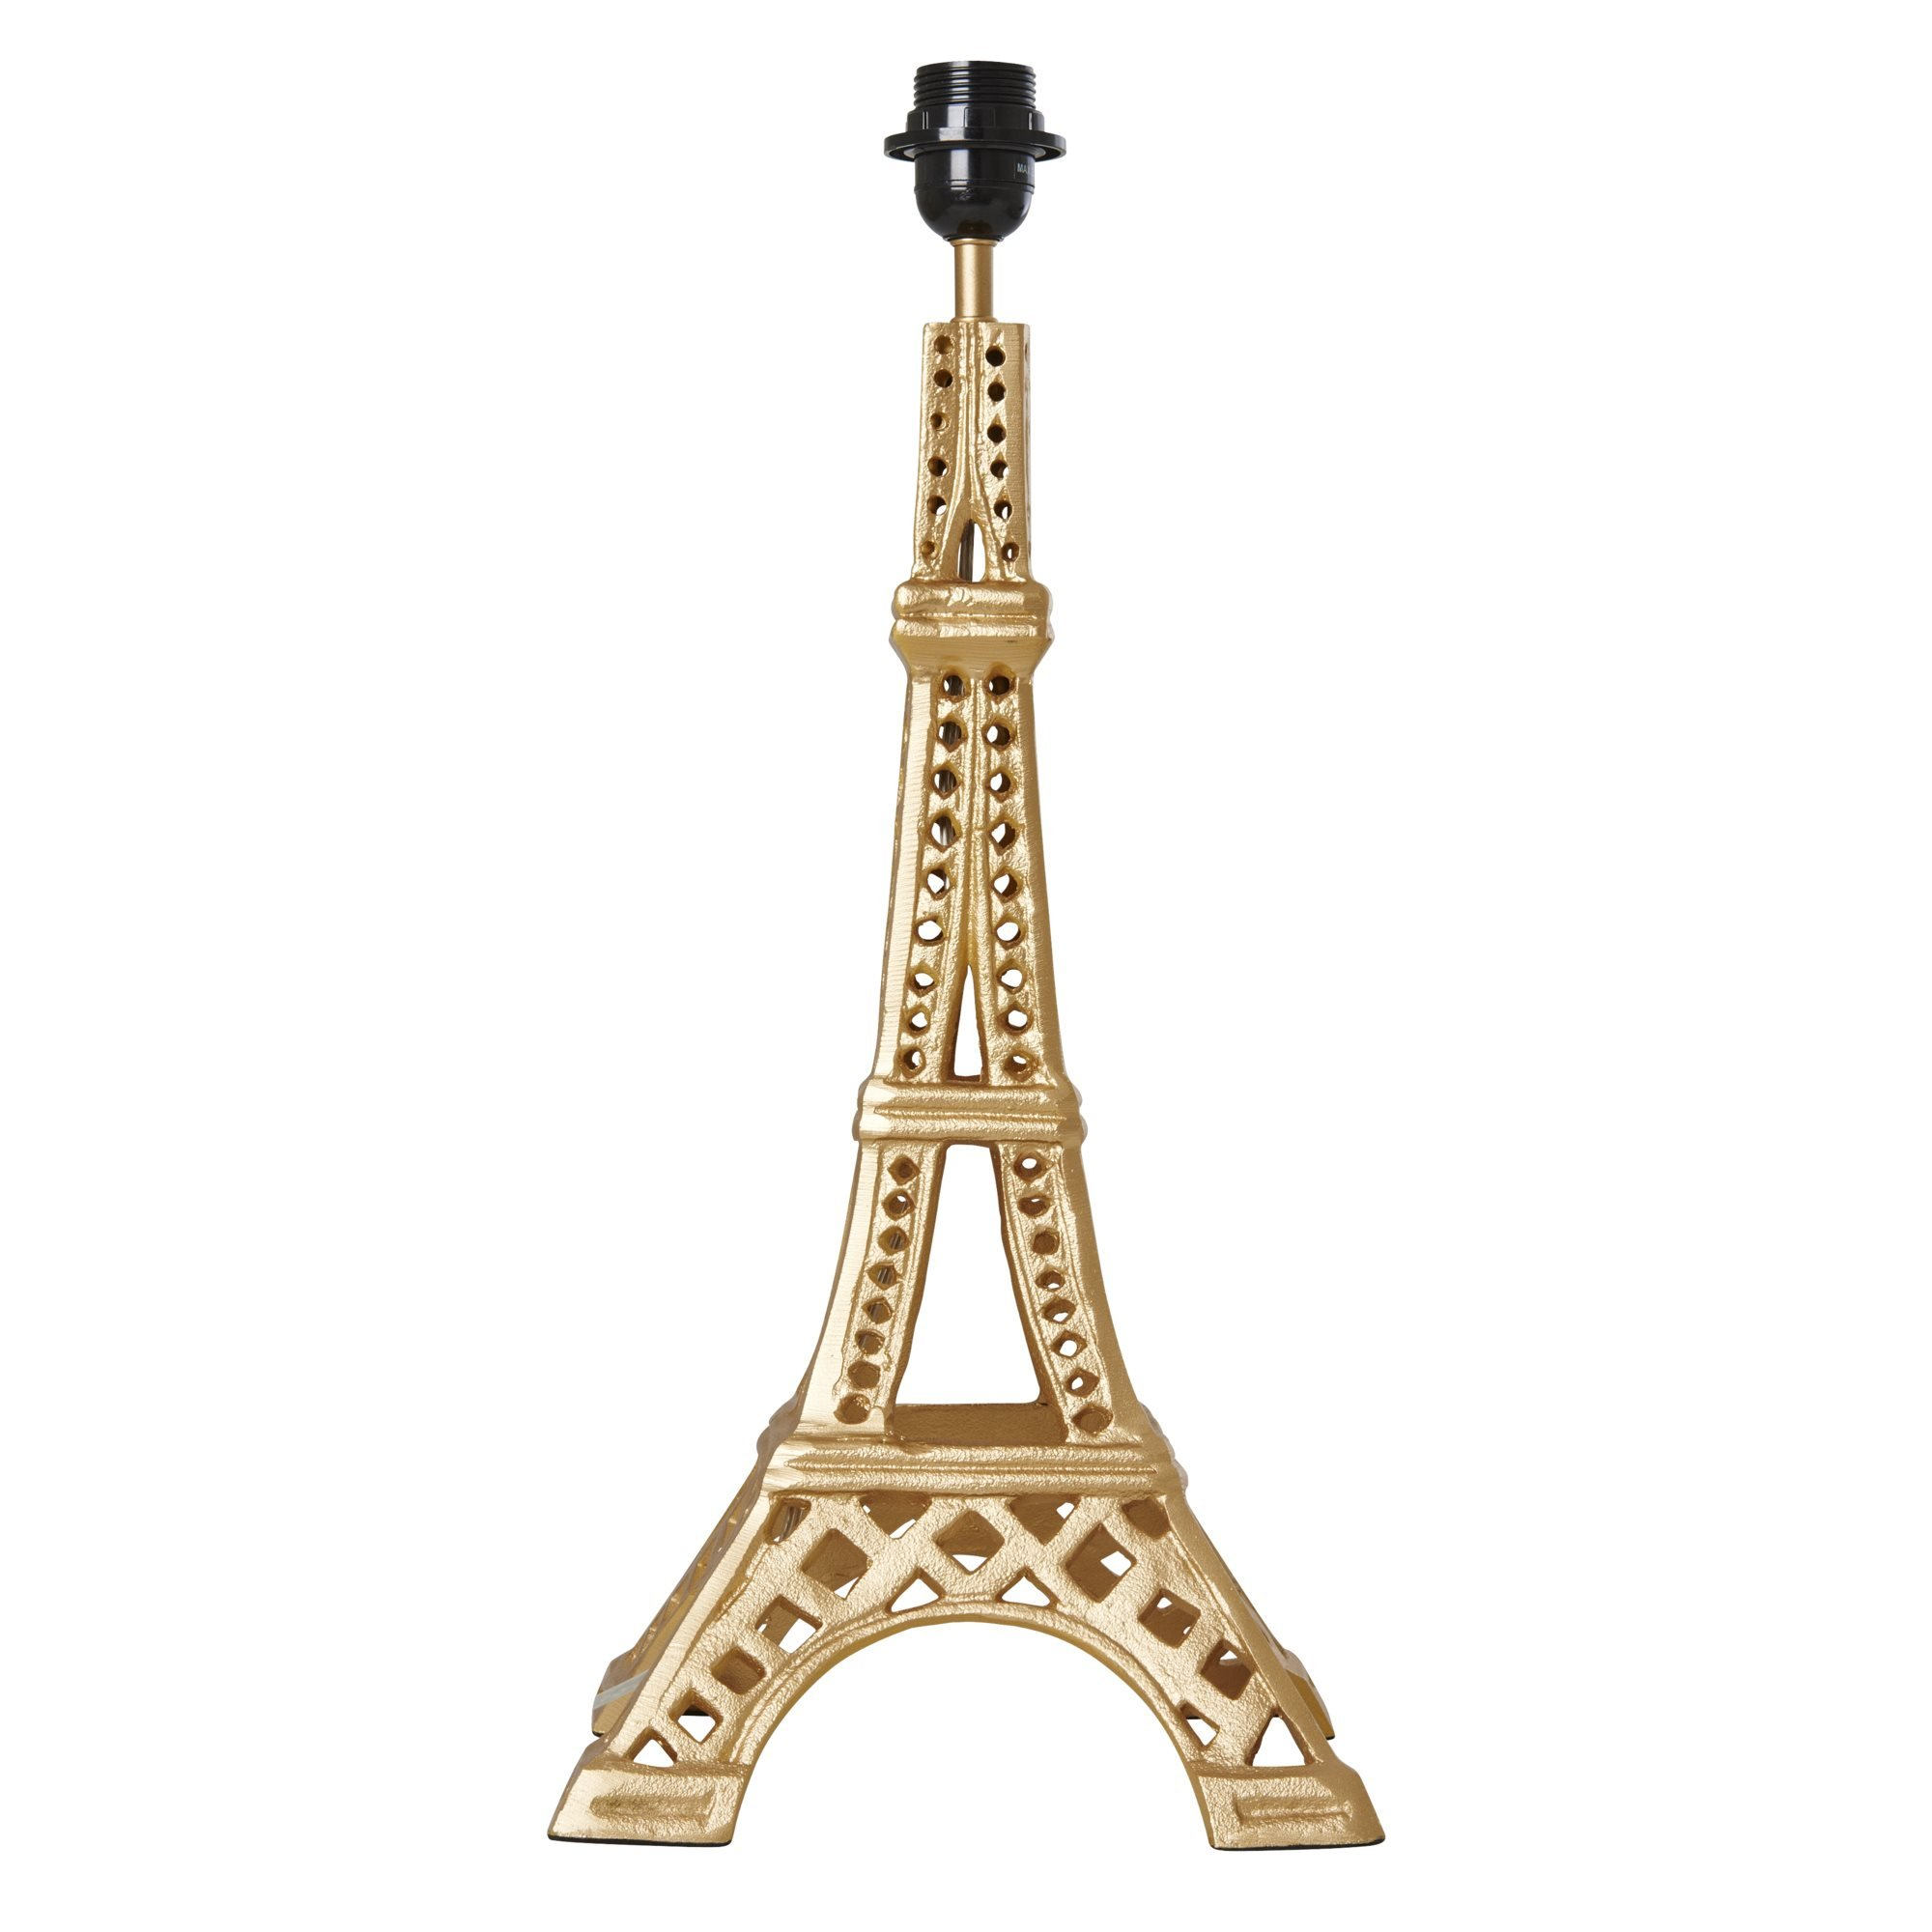 Rice - Metal Gold Table Lamp in Eiffel Tower Shape - Large